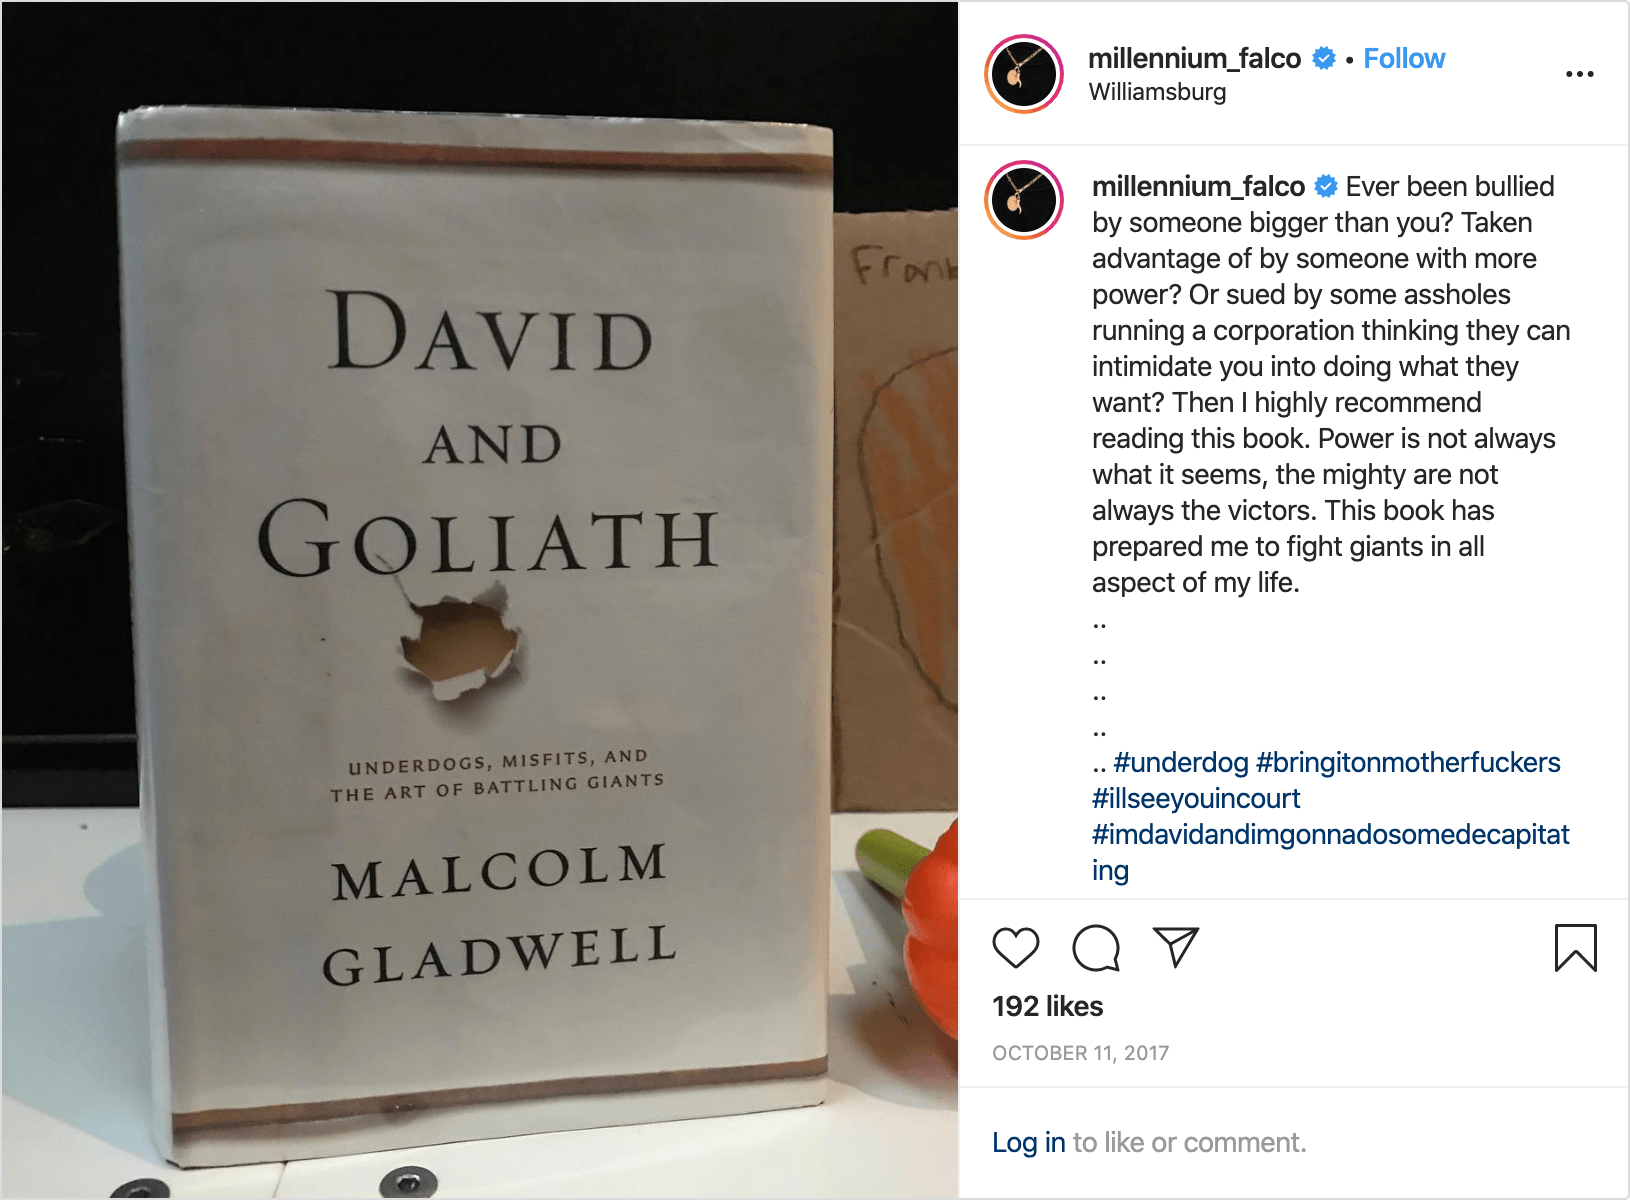 An <a href='https://www.instagram.com/p/BaH6aNRnyyO/?igshid=1txu9eh5rnw2l'>Instagram post</a> by Anthony Falco, featuring <i>David and Goliath</i> by Malcom Gladwell, in response to the   Roberta's lawsuit.